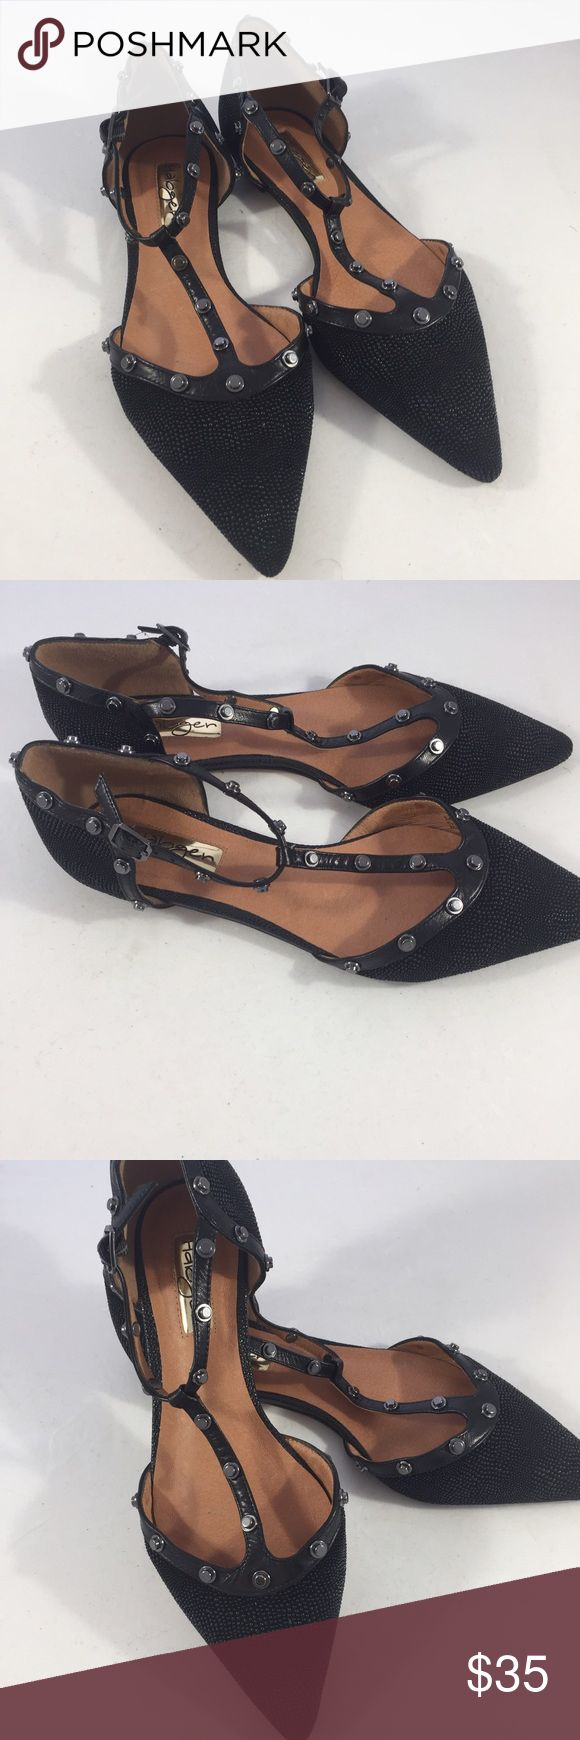 Halogen studded flats Halogen black stud flats. These have never been worn. Sitting in my closet and need to go. Size 7.5 Halogen Shoes Flats & Loafers